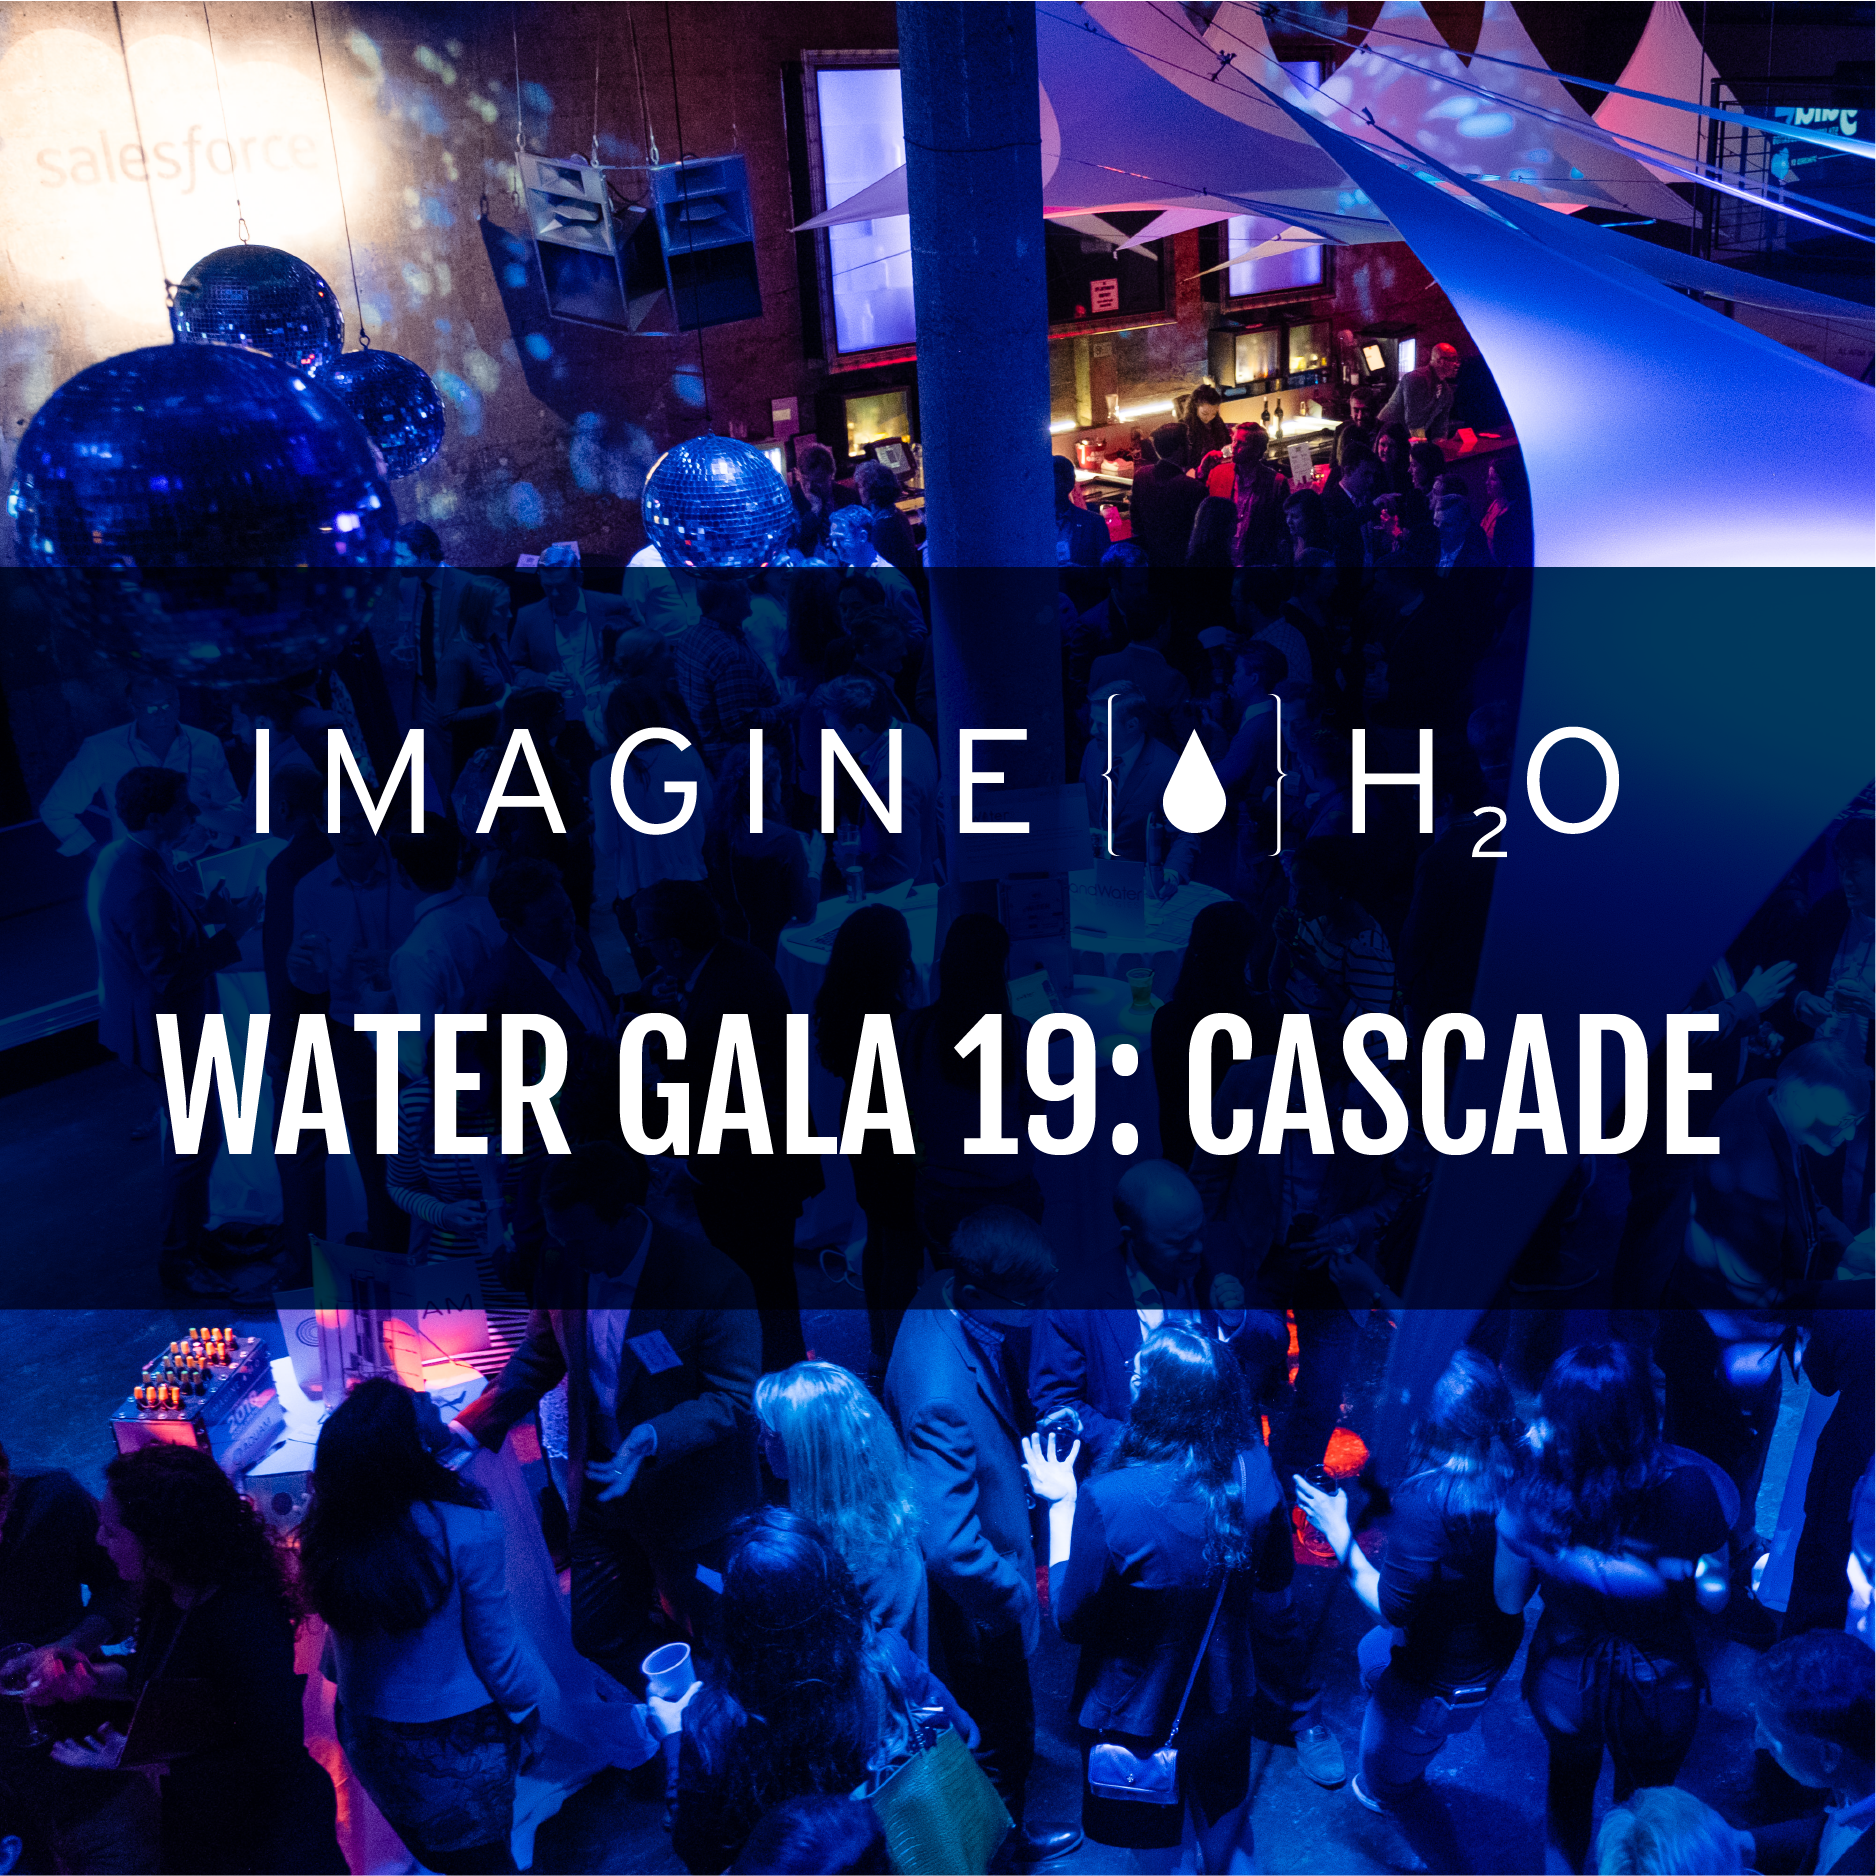 Water Gala Image - Cascade.png